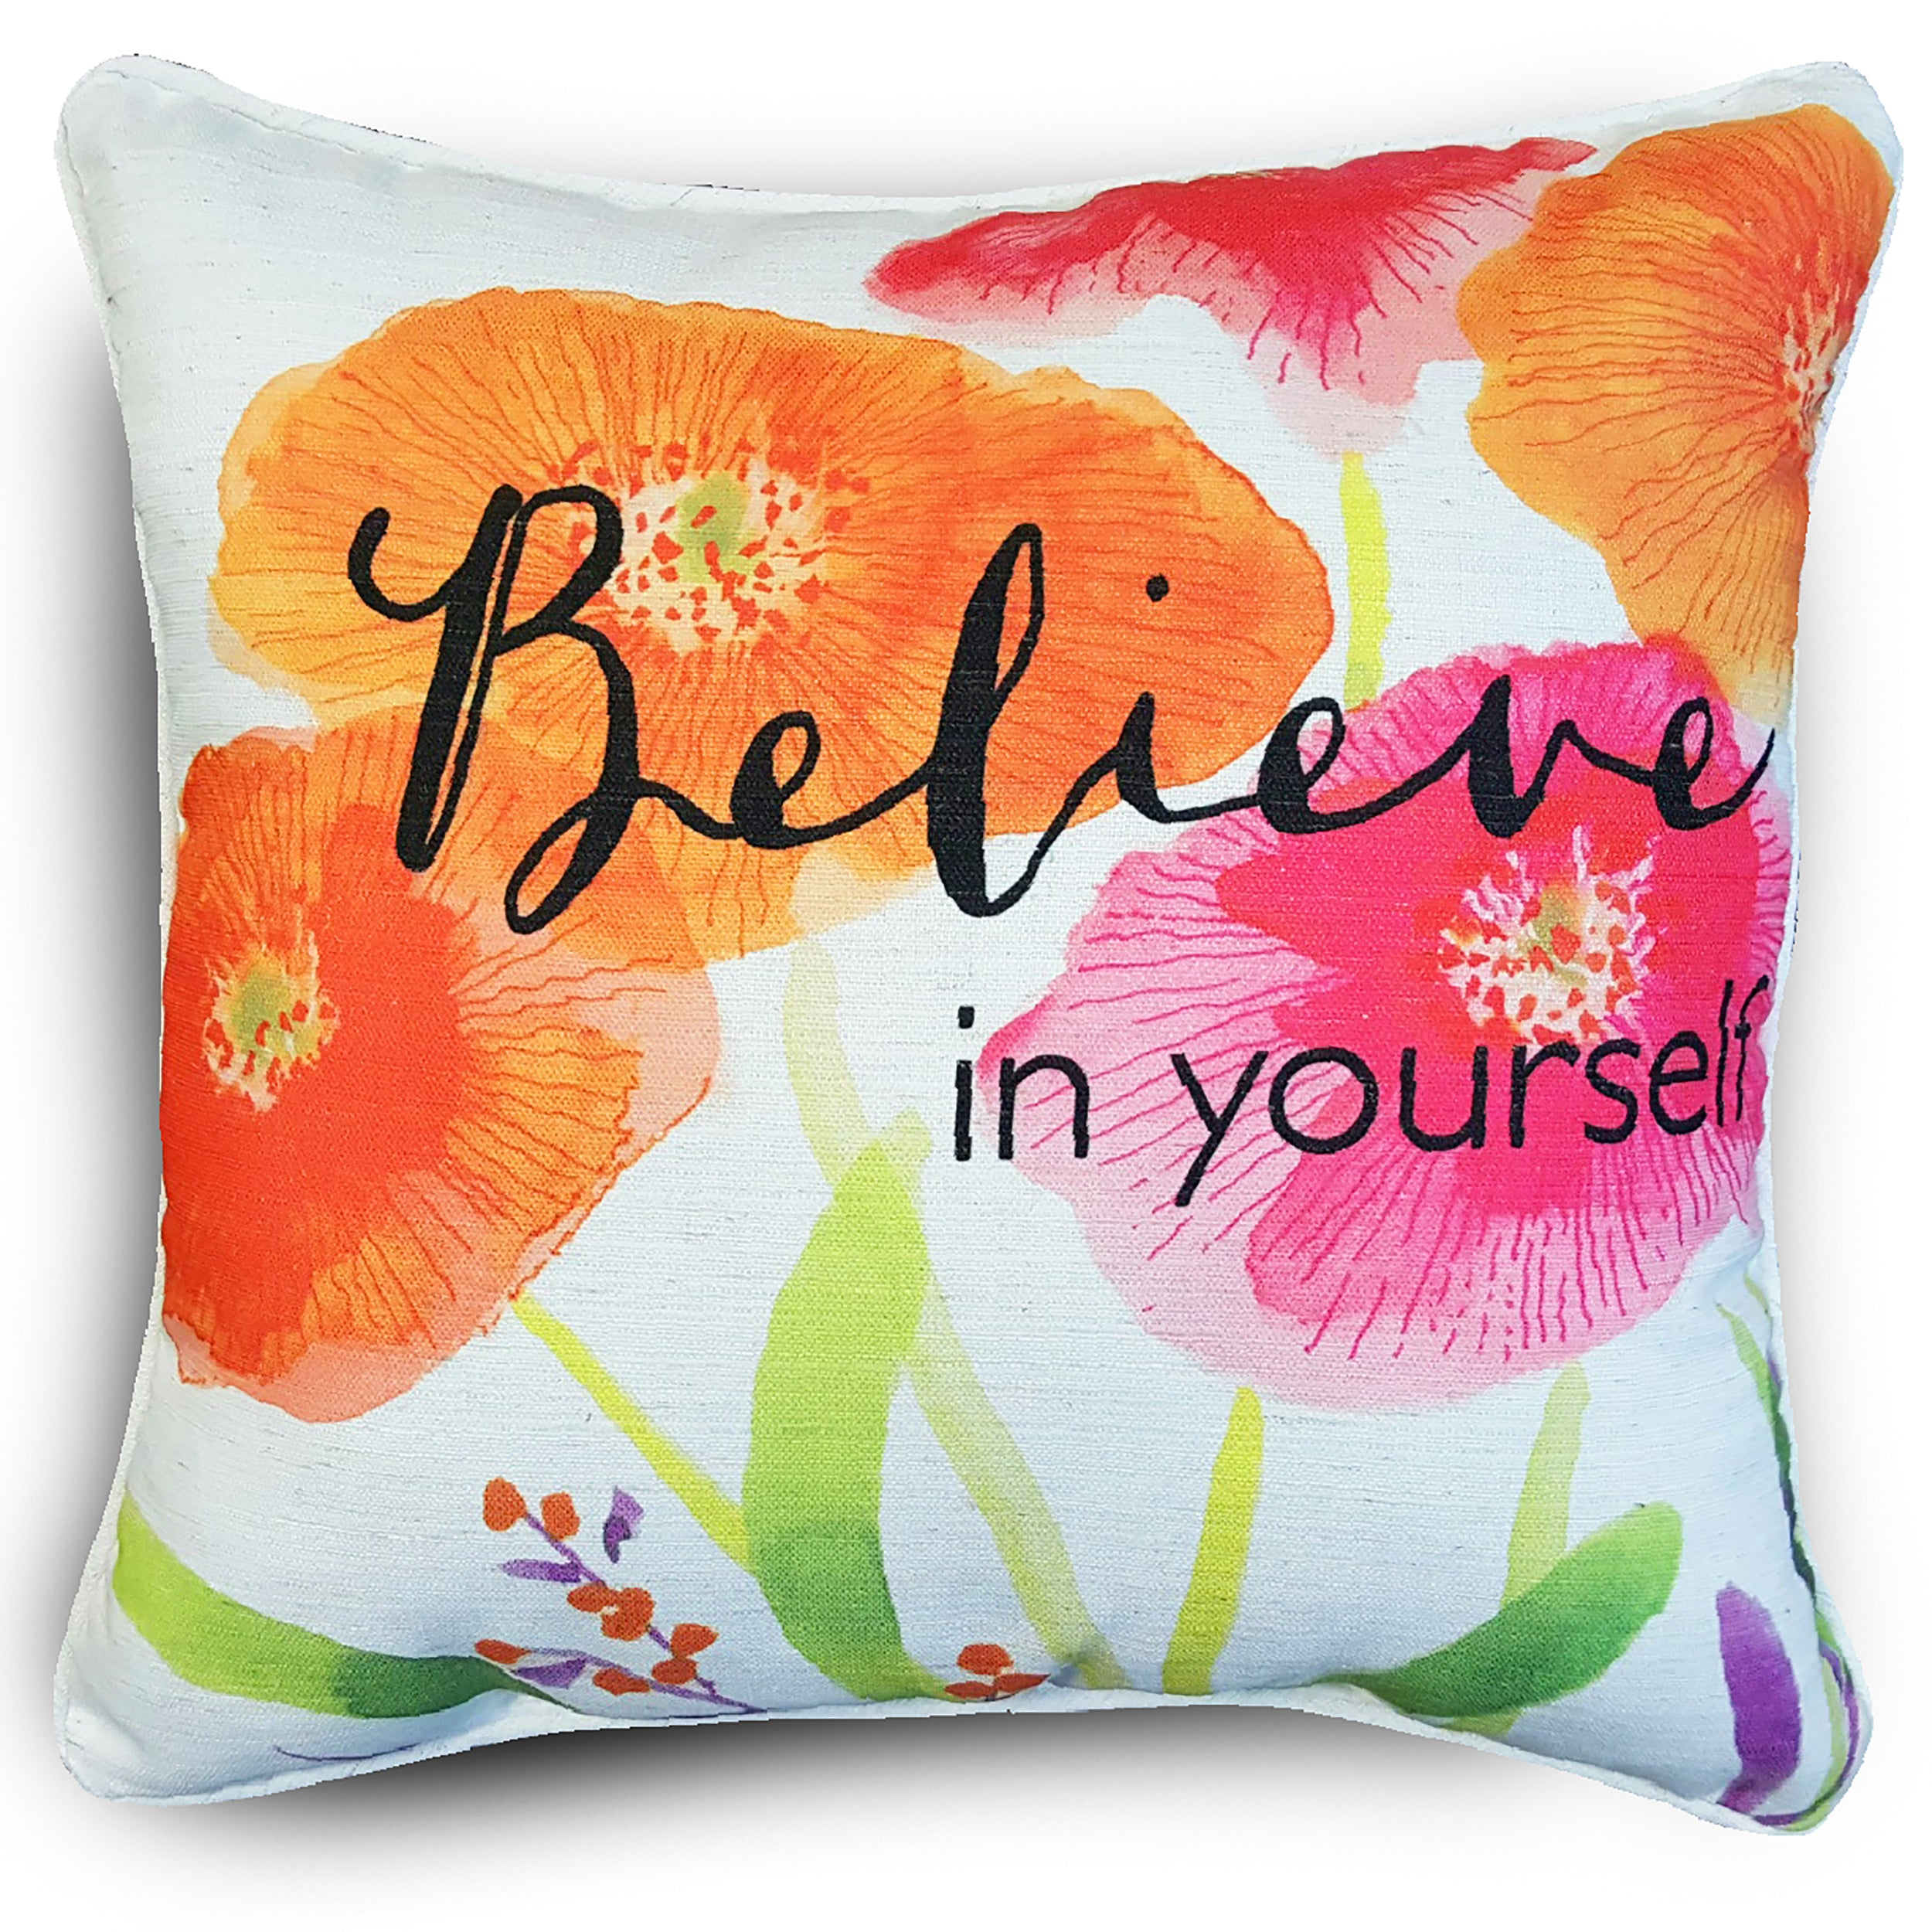 Edith Believe Multicolored Reversible Floral Patterned Throw Pillows Set Of 2 Overstock 15617148